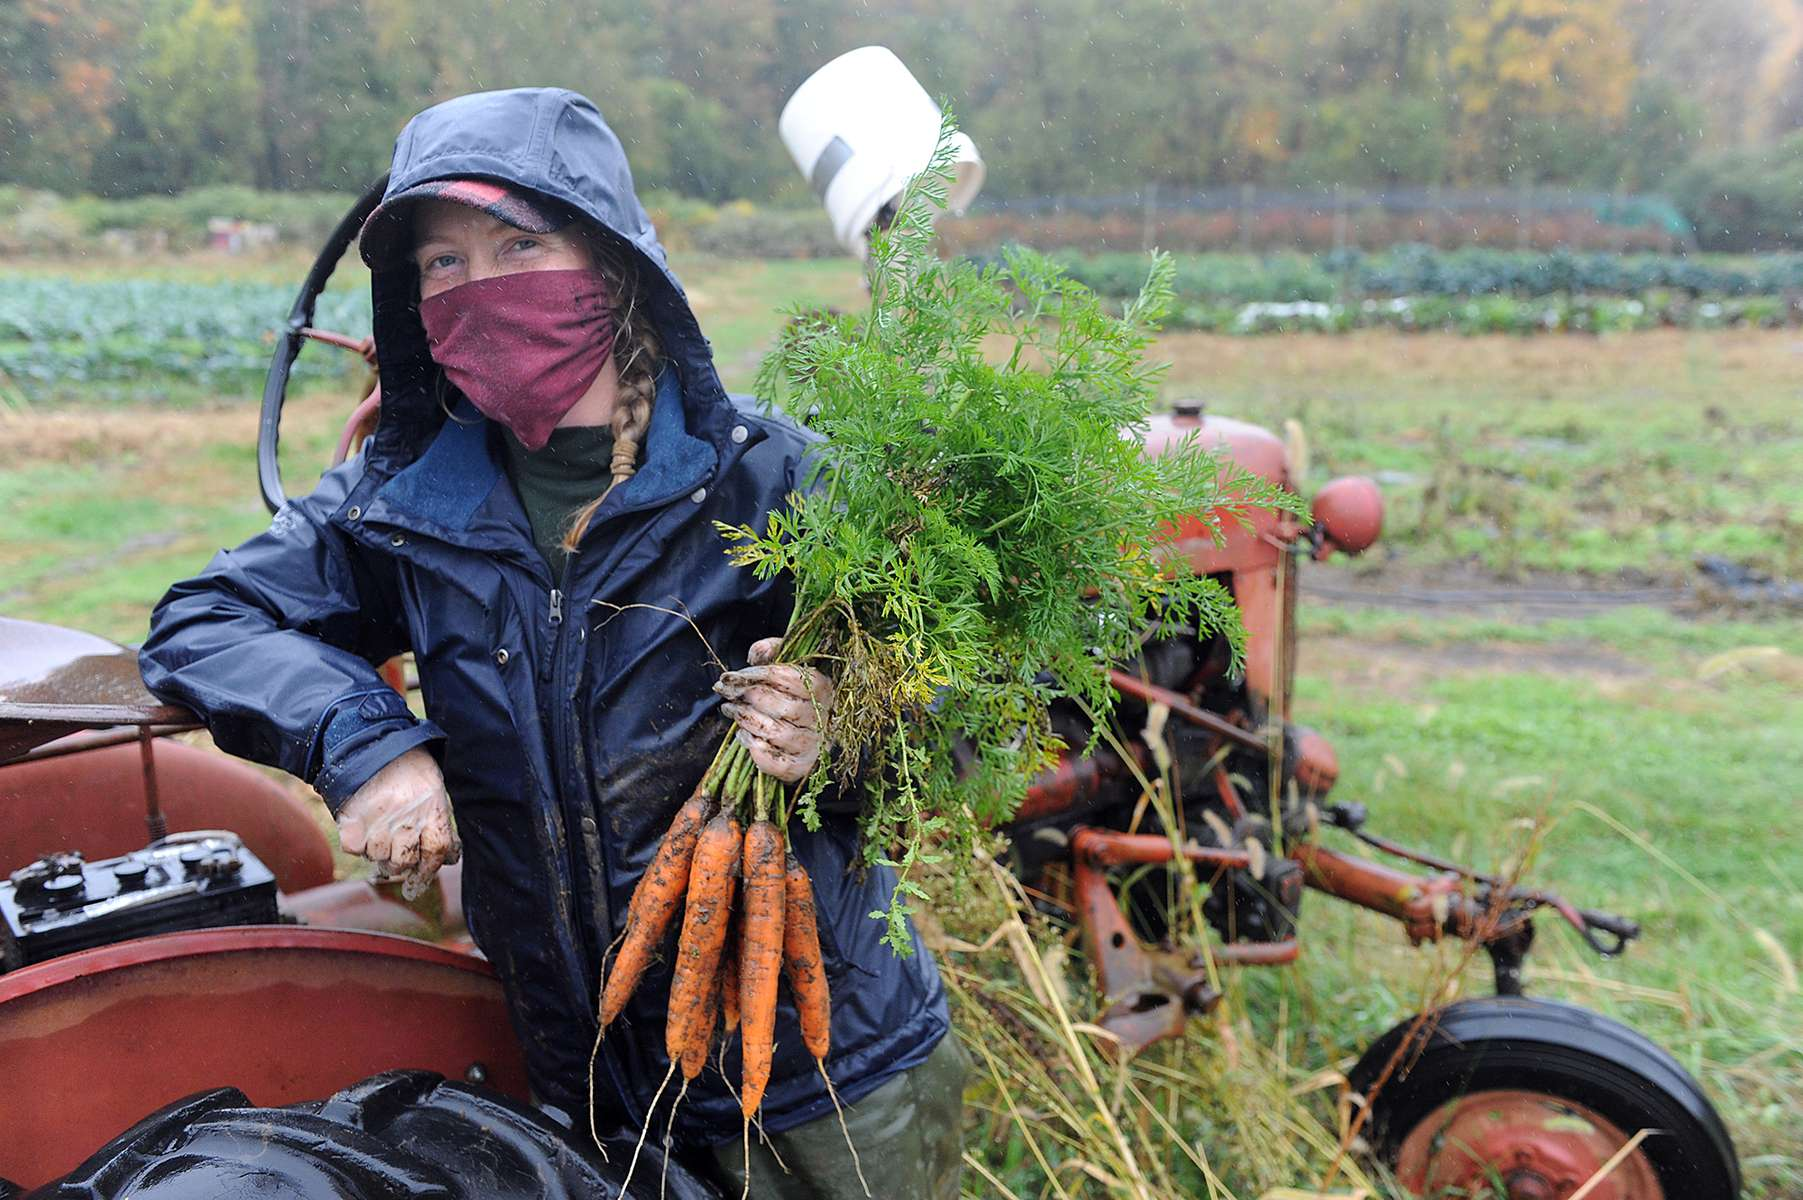 10/13/20 - FRAMINGHAM - Stearns Farm Manager Ember Fleming with just pulled carrots Tuesday morning. [Daily News and Wicked Local Staff Photo/Art Illman]